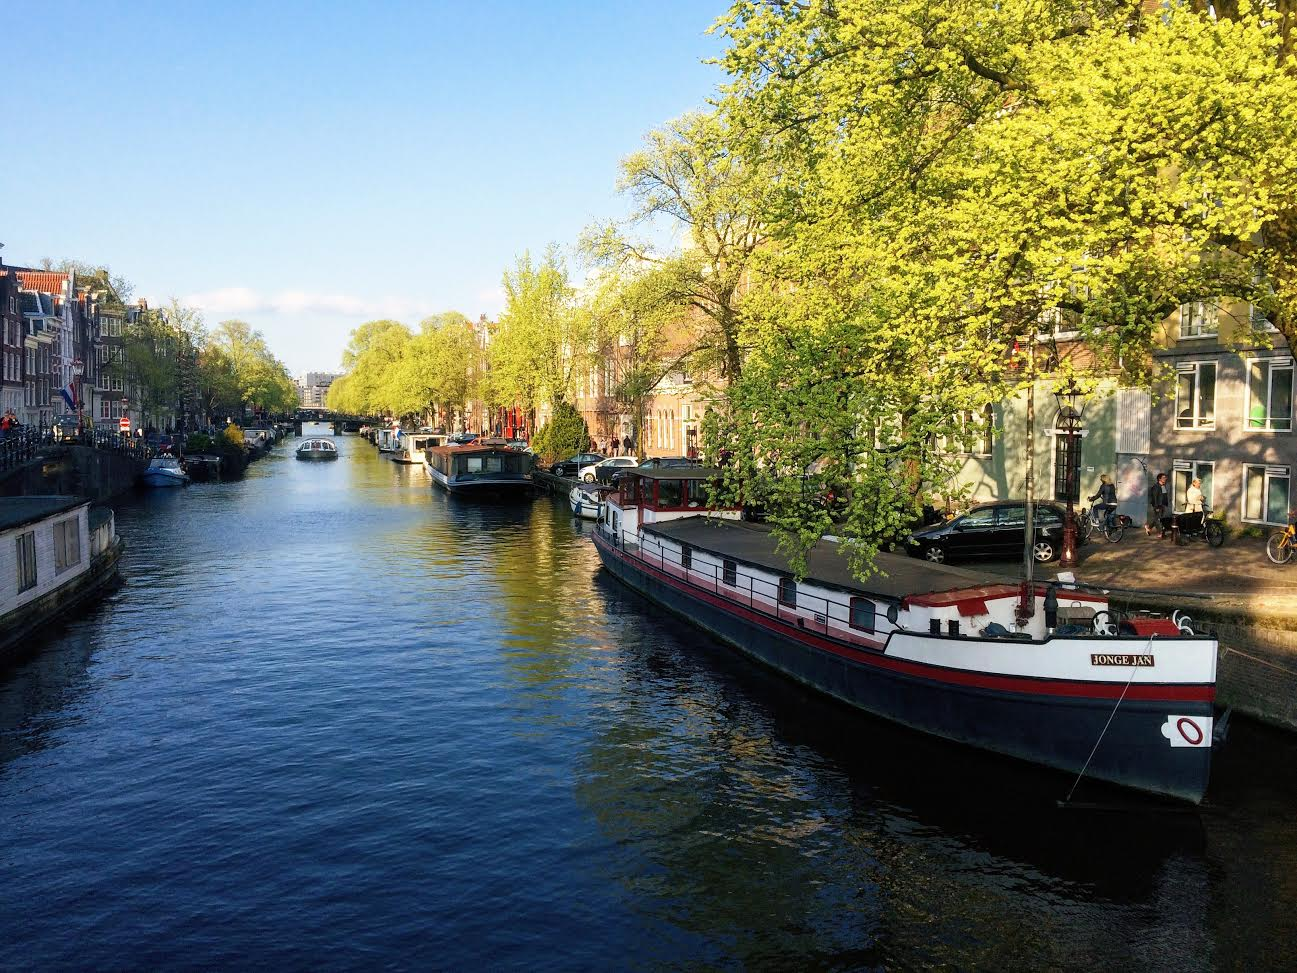 House Boats - 5 unusual things about Amsterdam